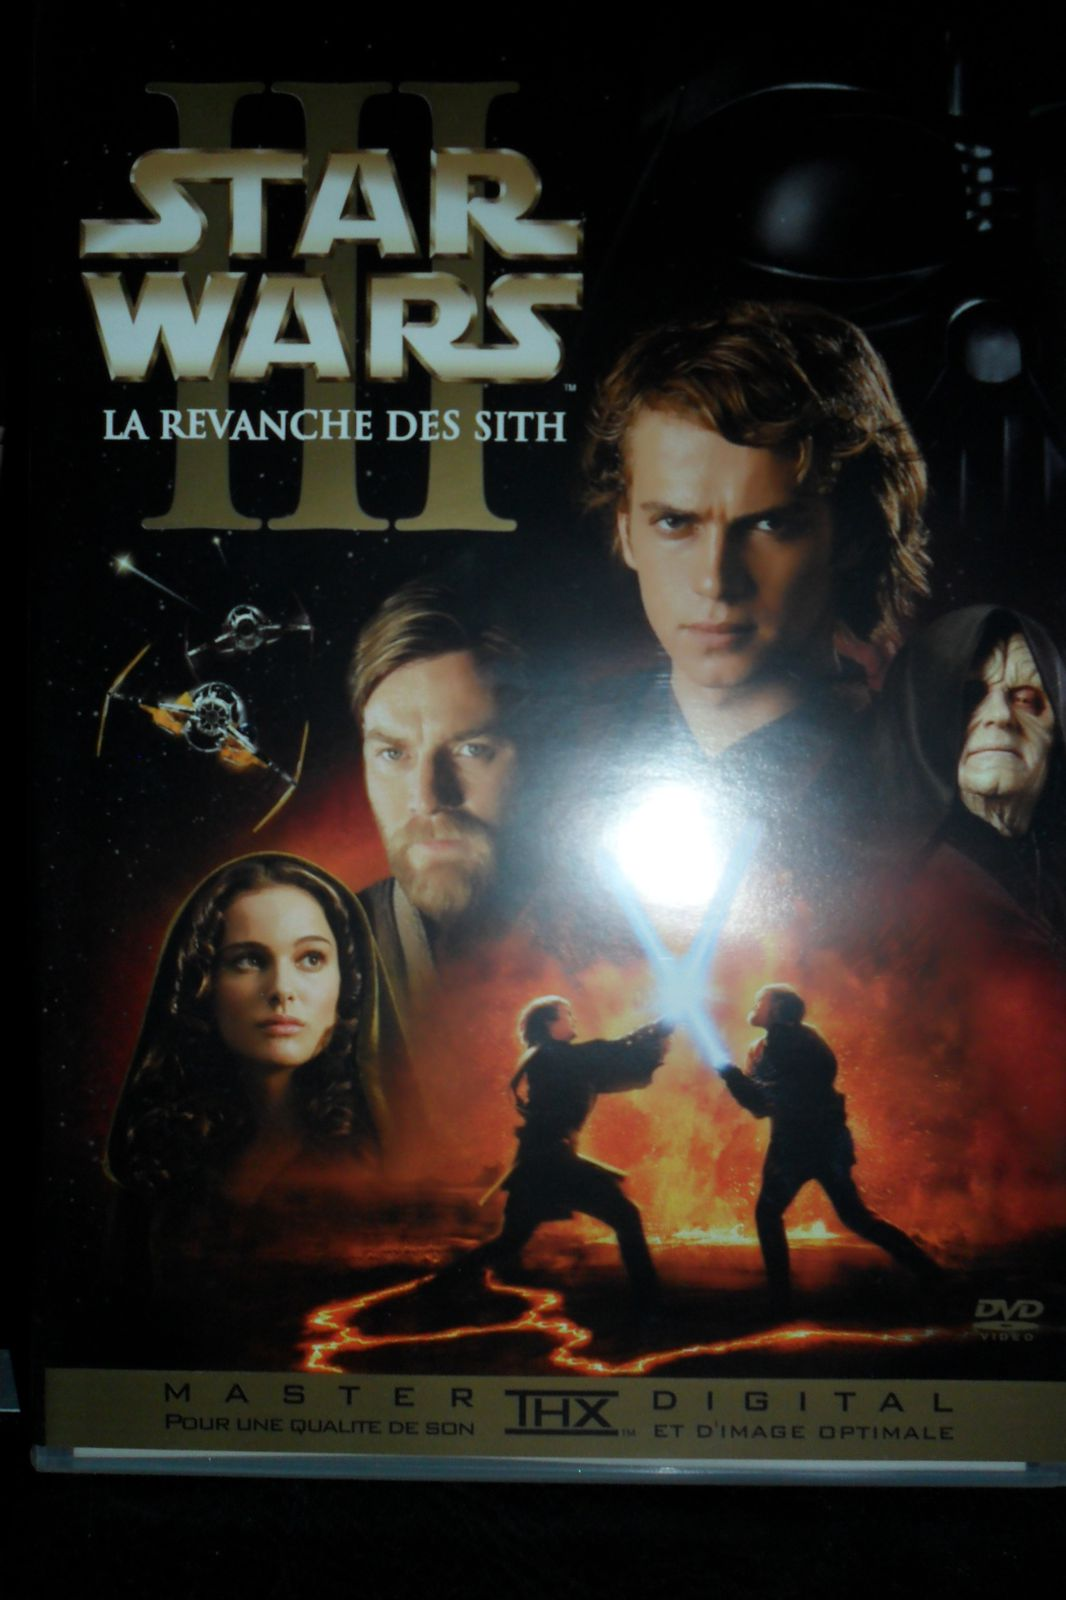 http://idata.over-blog.com/3/18/35/93/jano/film-star-wars/SAM_0019.JPG